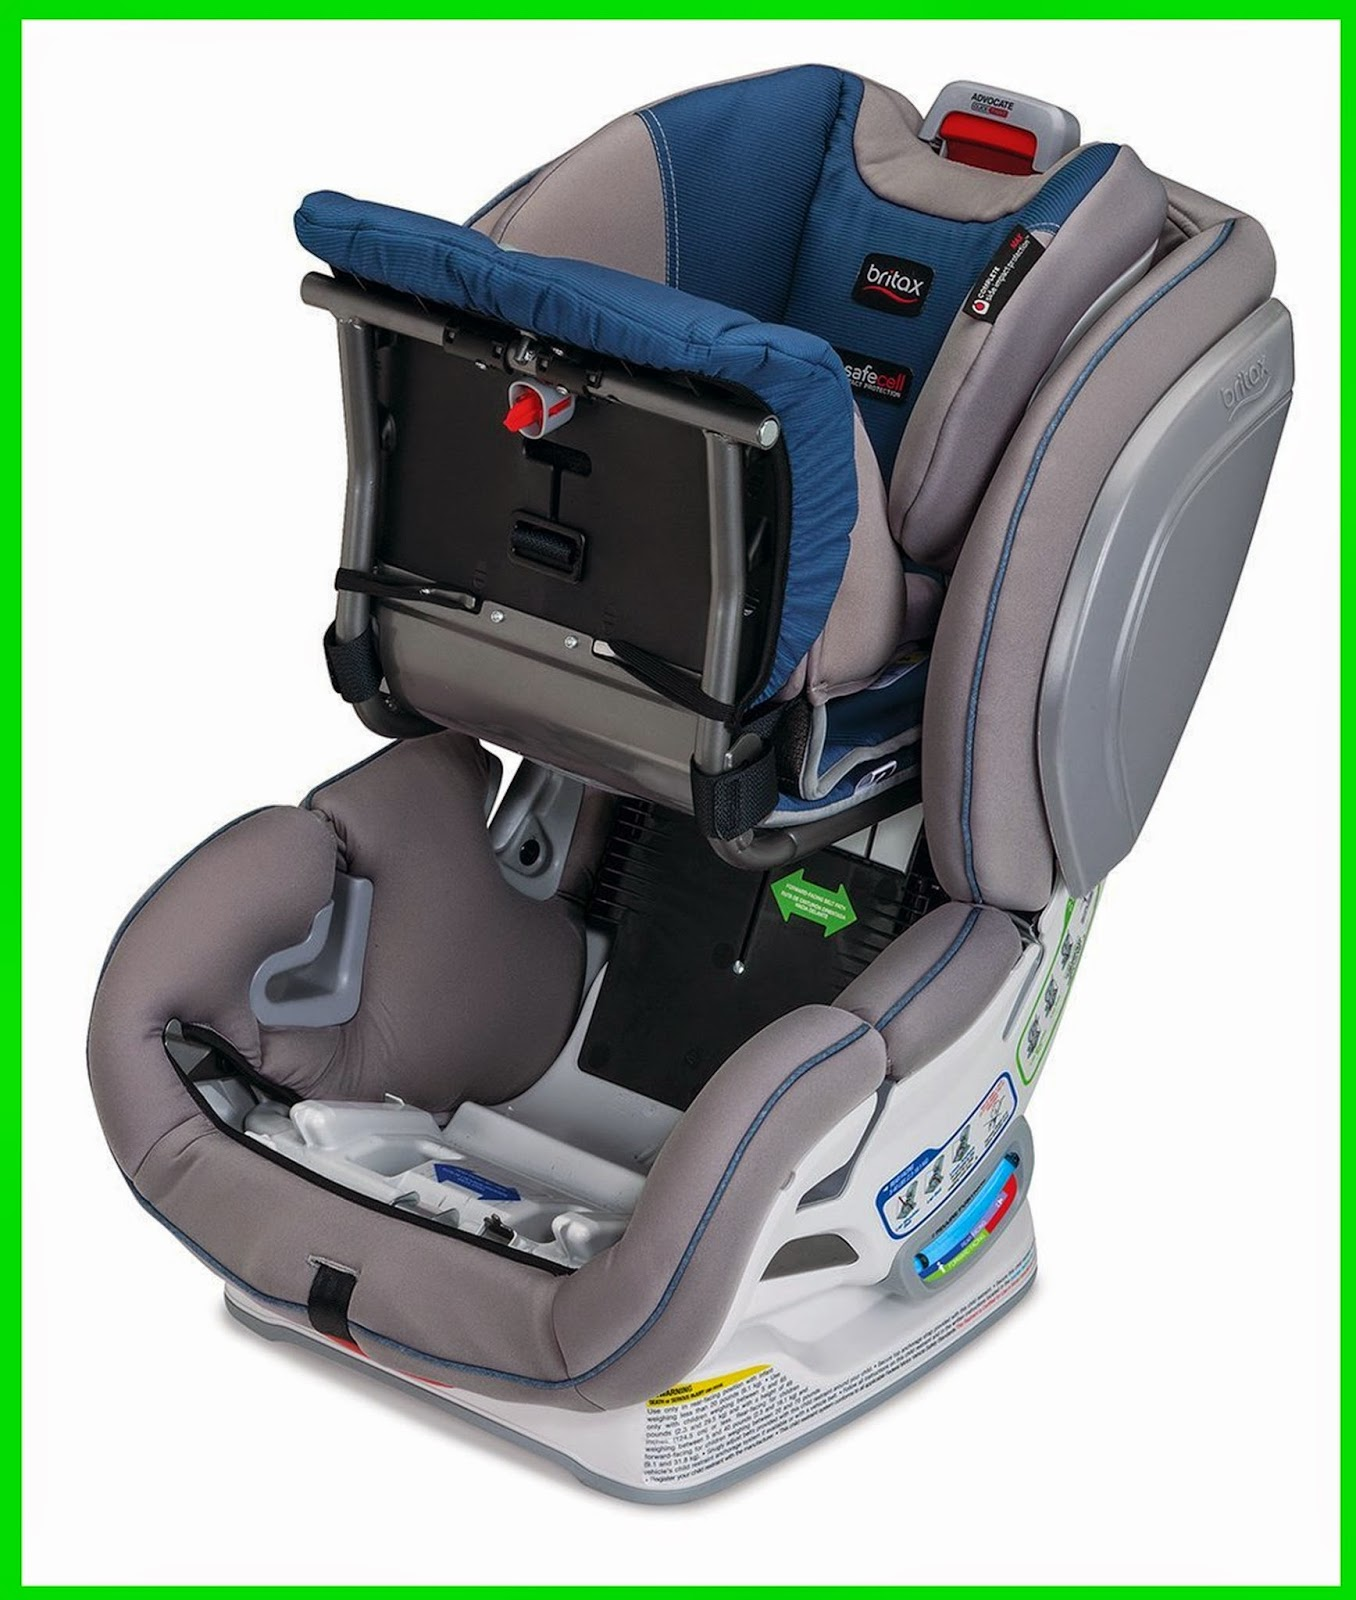 britax car seat compare marathon clicktight vs boulevard clicktight vs advocate clicktight. Black Bedroom Furniture Sets. Home Design Ideas